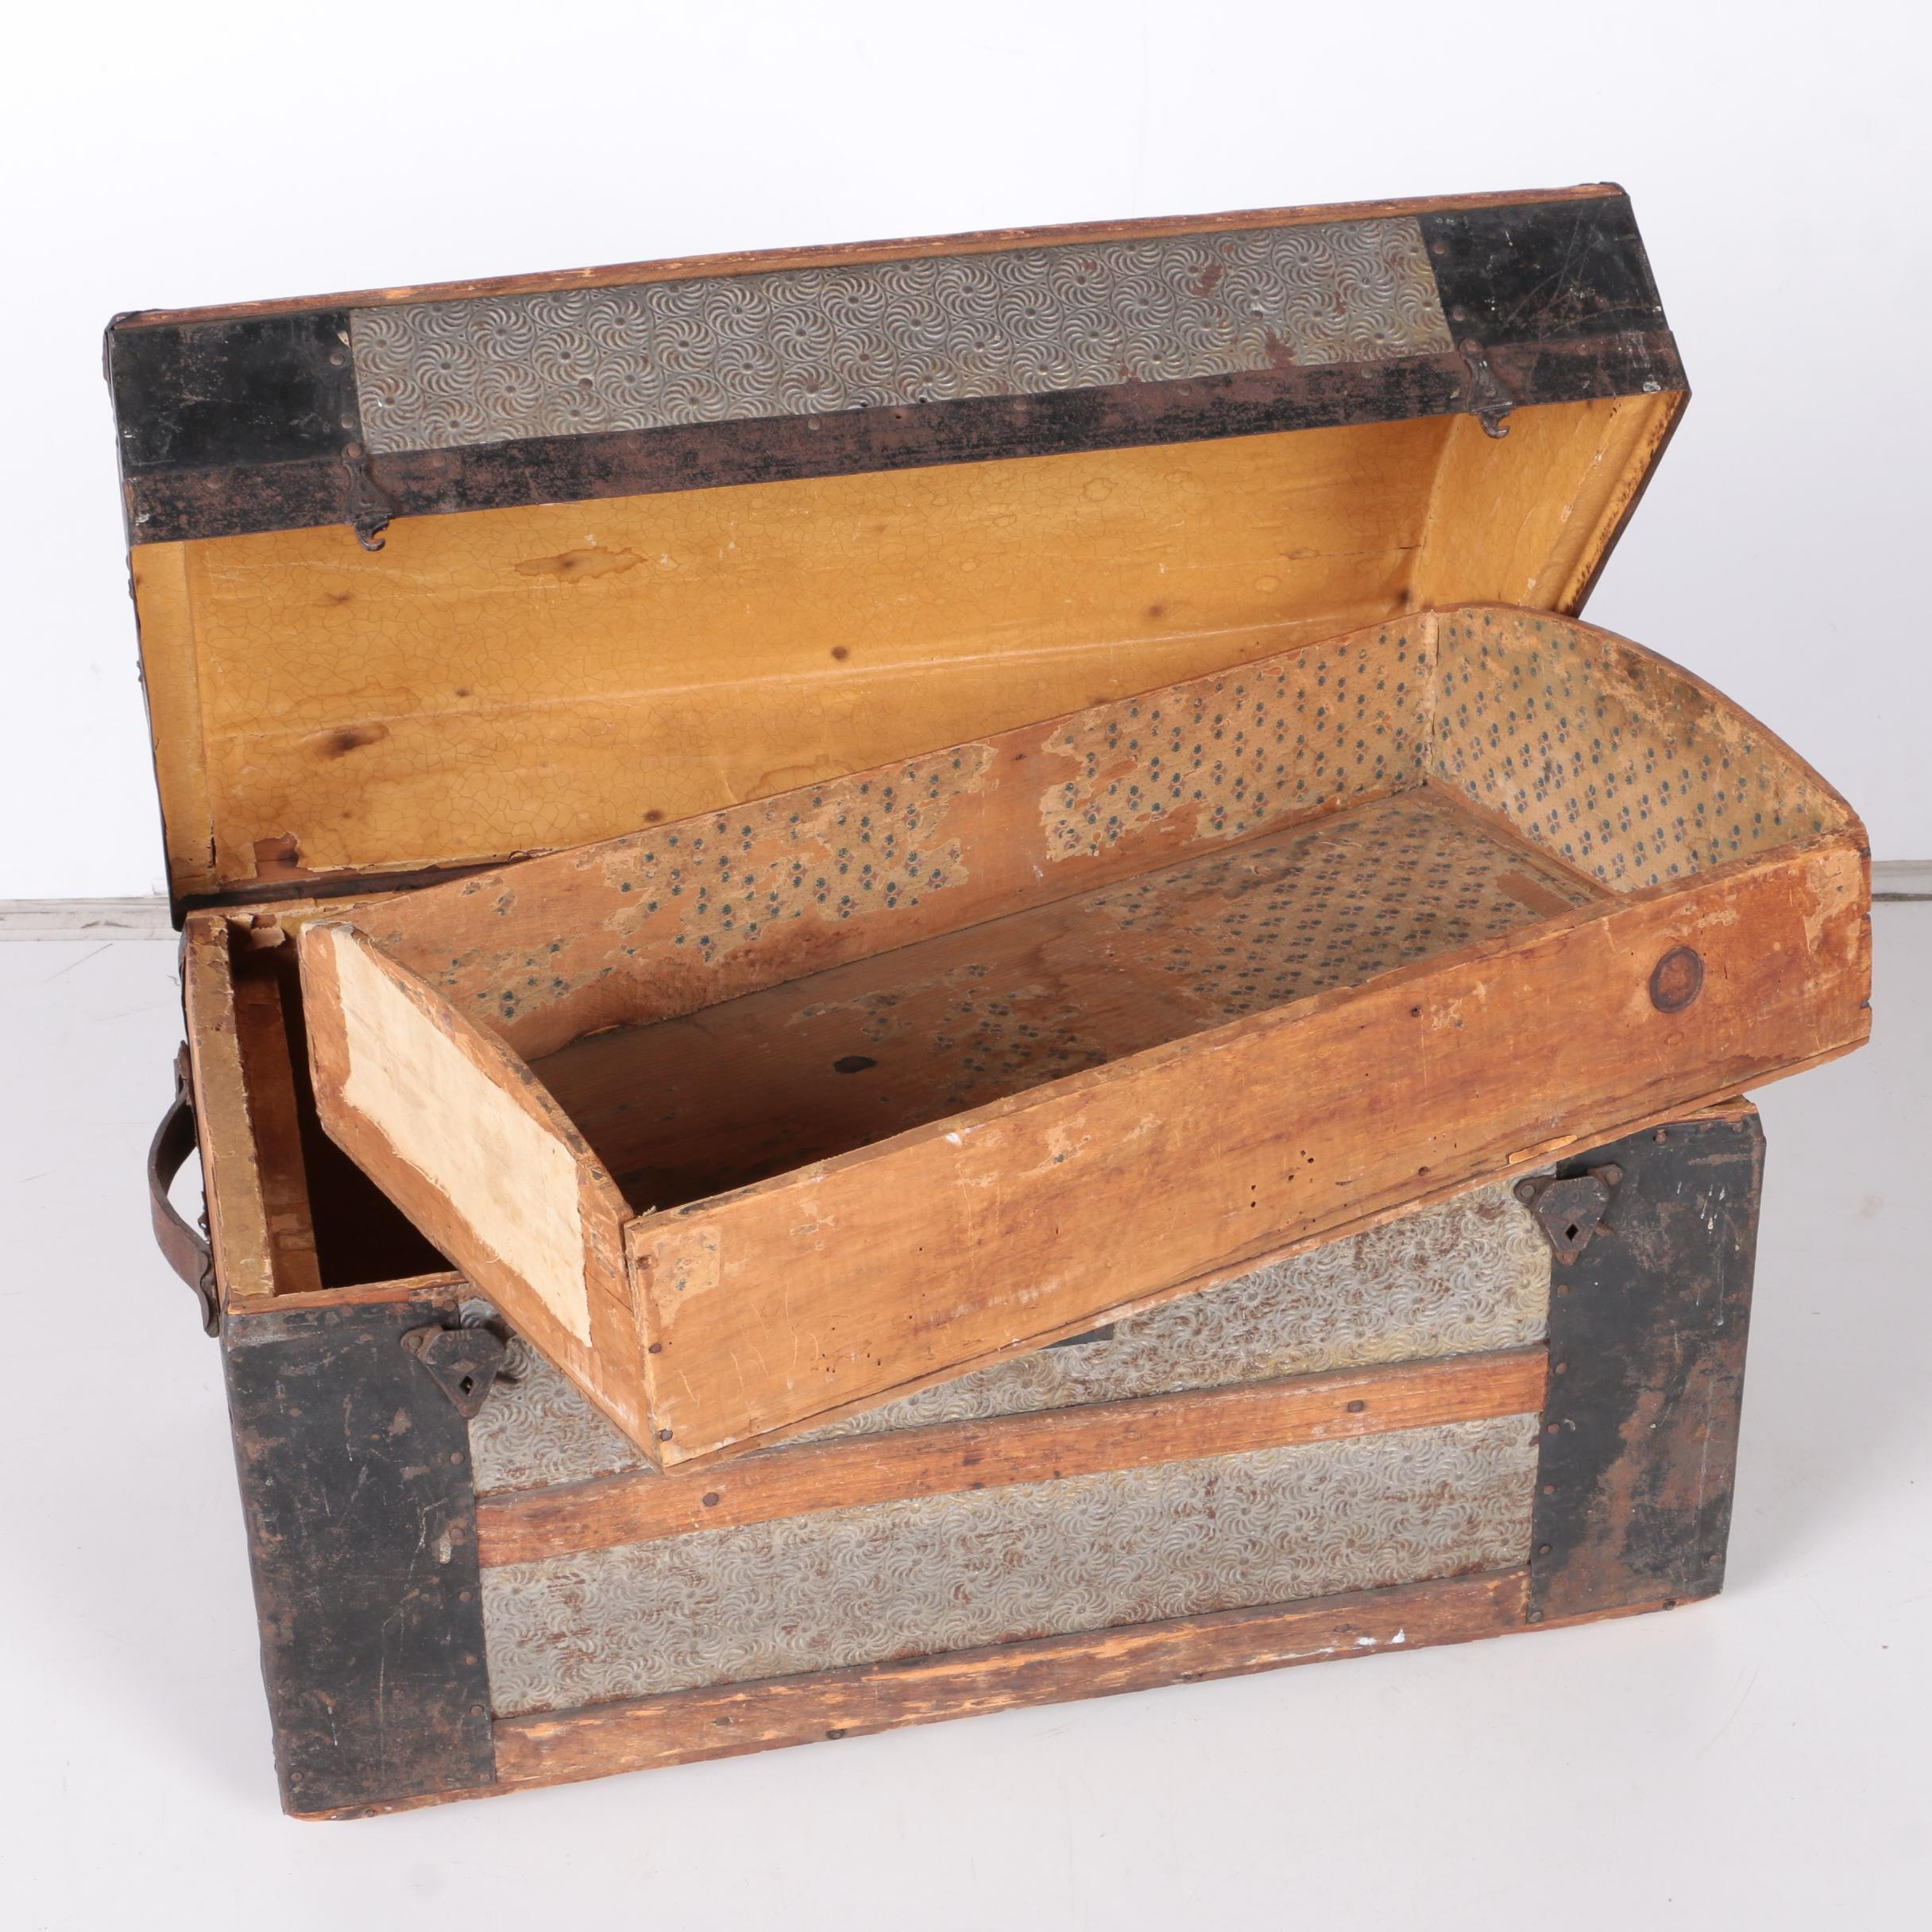 Antique Wood and Metal Trunk